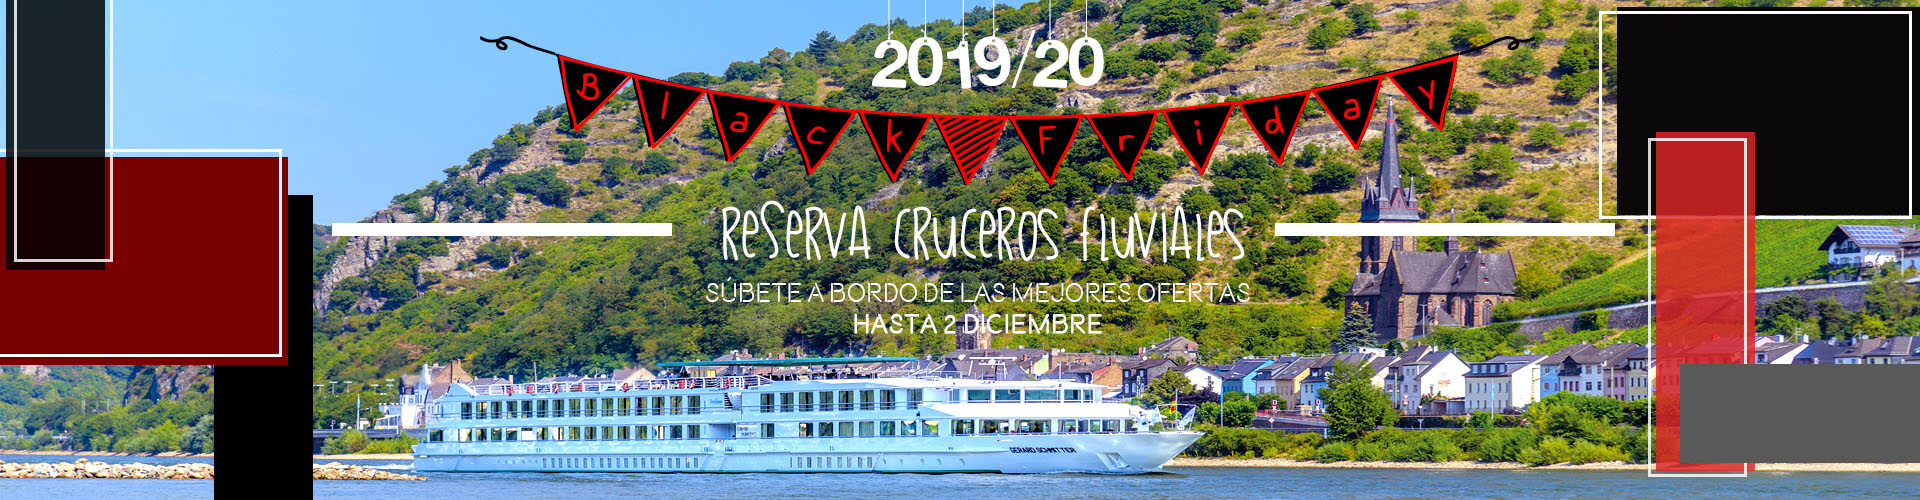 Black Friday 2019-2020 Cruceros Fluviales